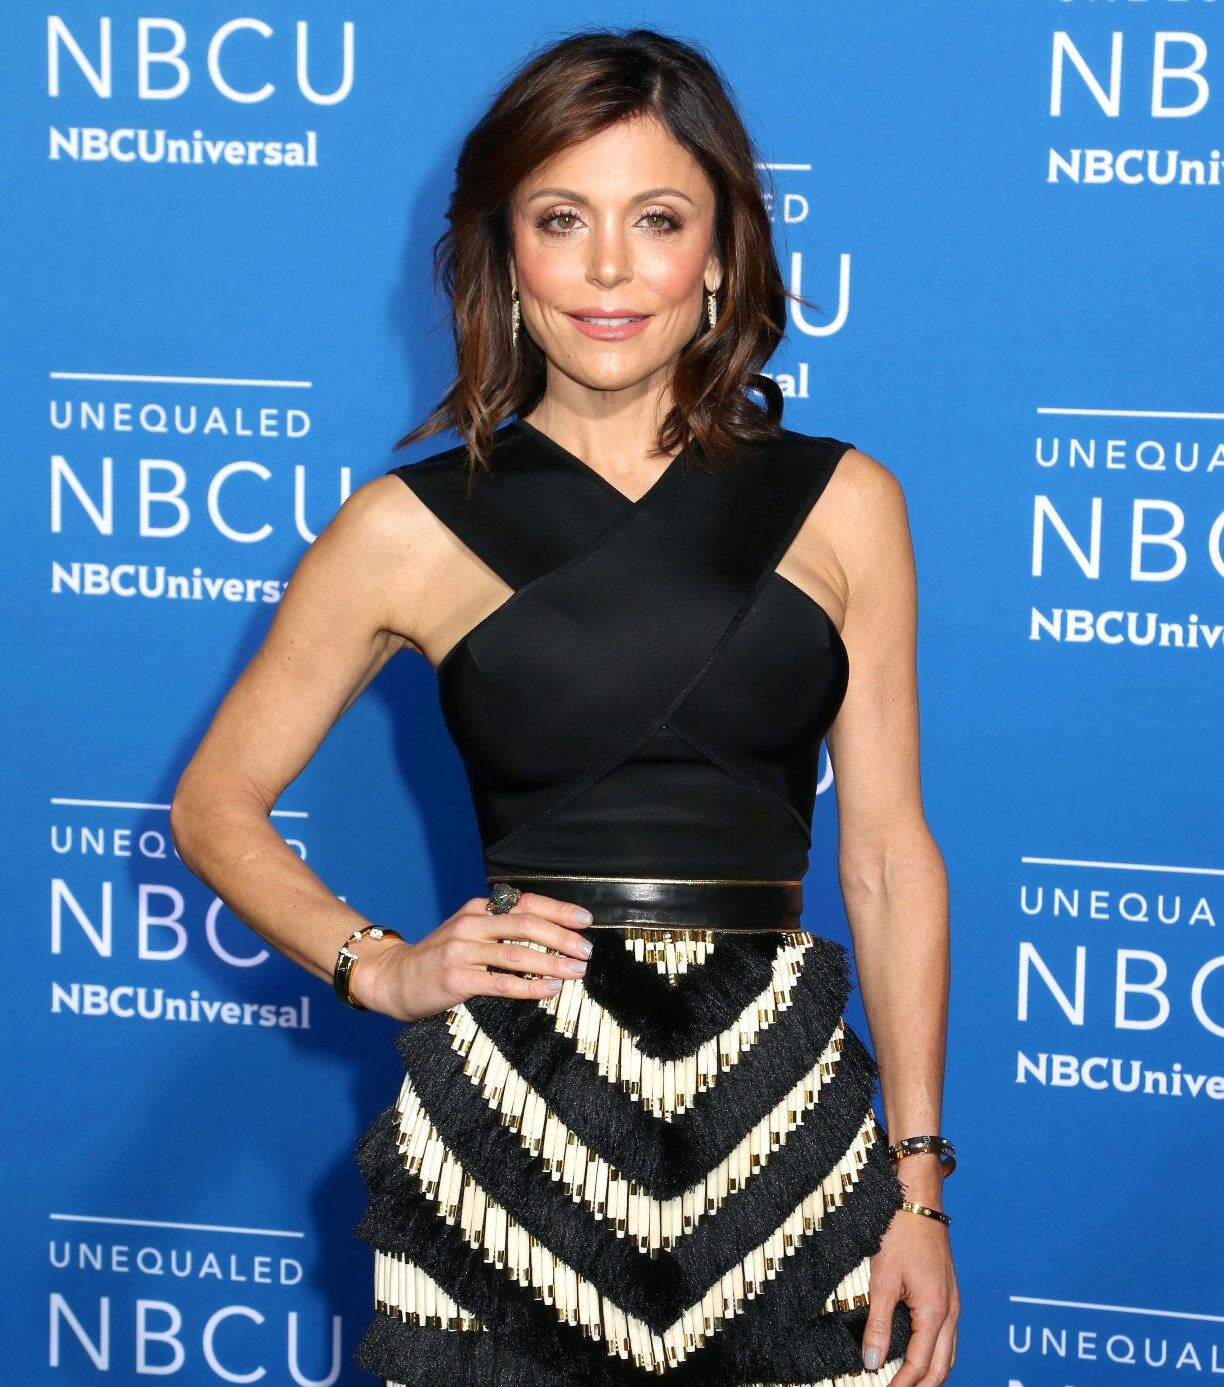 Bethenny Frankel Reveals She's Quitting RHONY and Won't Be Featured on Season 12! Find Out What's Next for Her